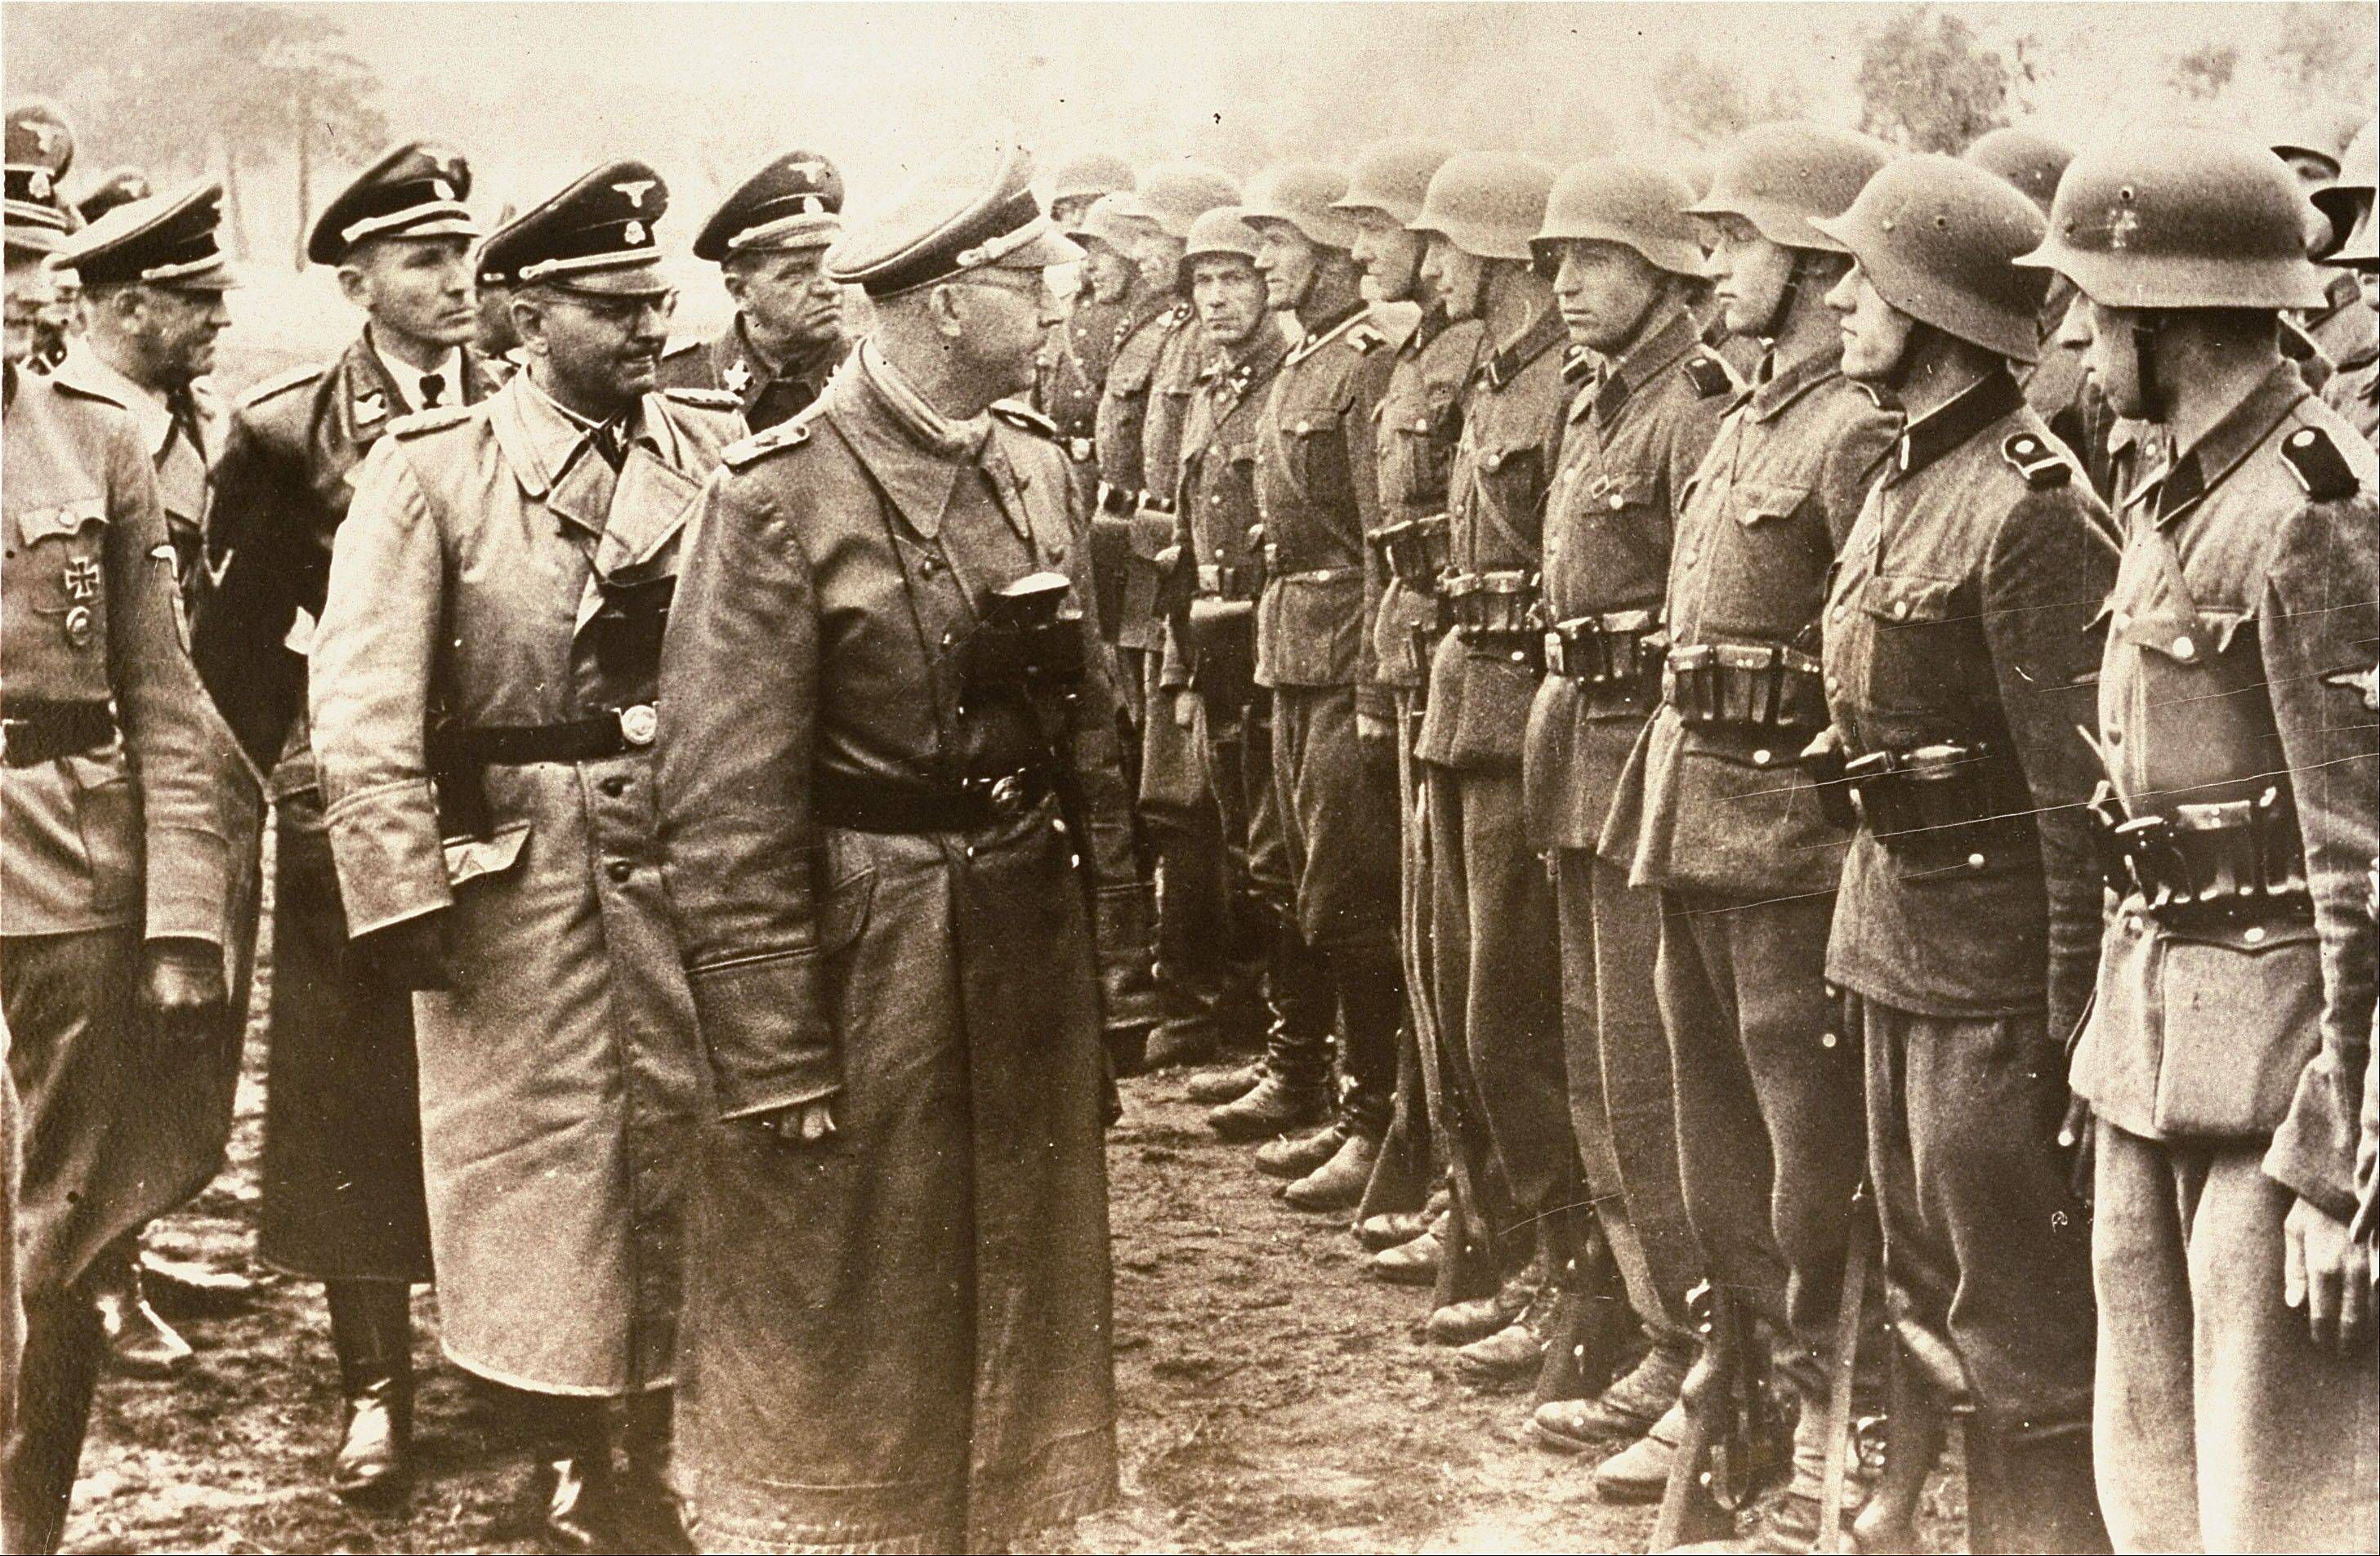 This June 3, 1944 photo provided by the US Holocaust Memorial Museum shows Heinrich Himmler, center, SS Reichsfuehrer-SS, head of the Gestapo and the Waffen-SS, and Minister of the Interior of Nazi Germany from 1943 to 1945, as he reviews troops of the Galician SS-Volunteer Infantry Division Michael Karkoc a top commander whose Nazi SS-led unit is blamed for burning villages filled with women and children lied to American immigration officials to get into the United States and has been living in Minnesota since shortly after World War II.